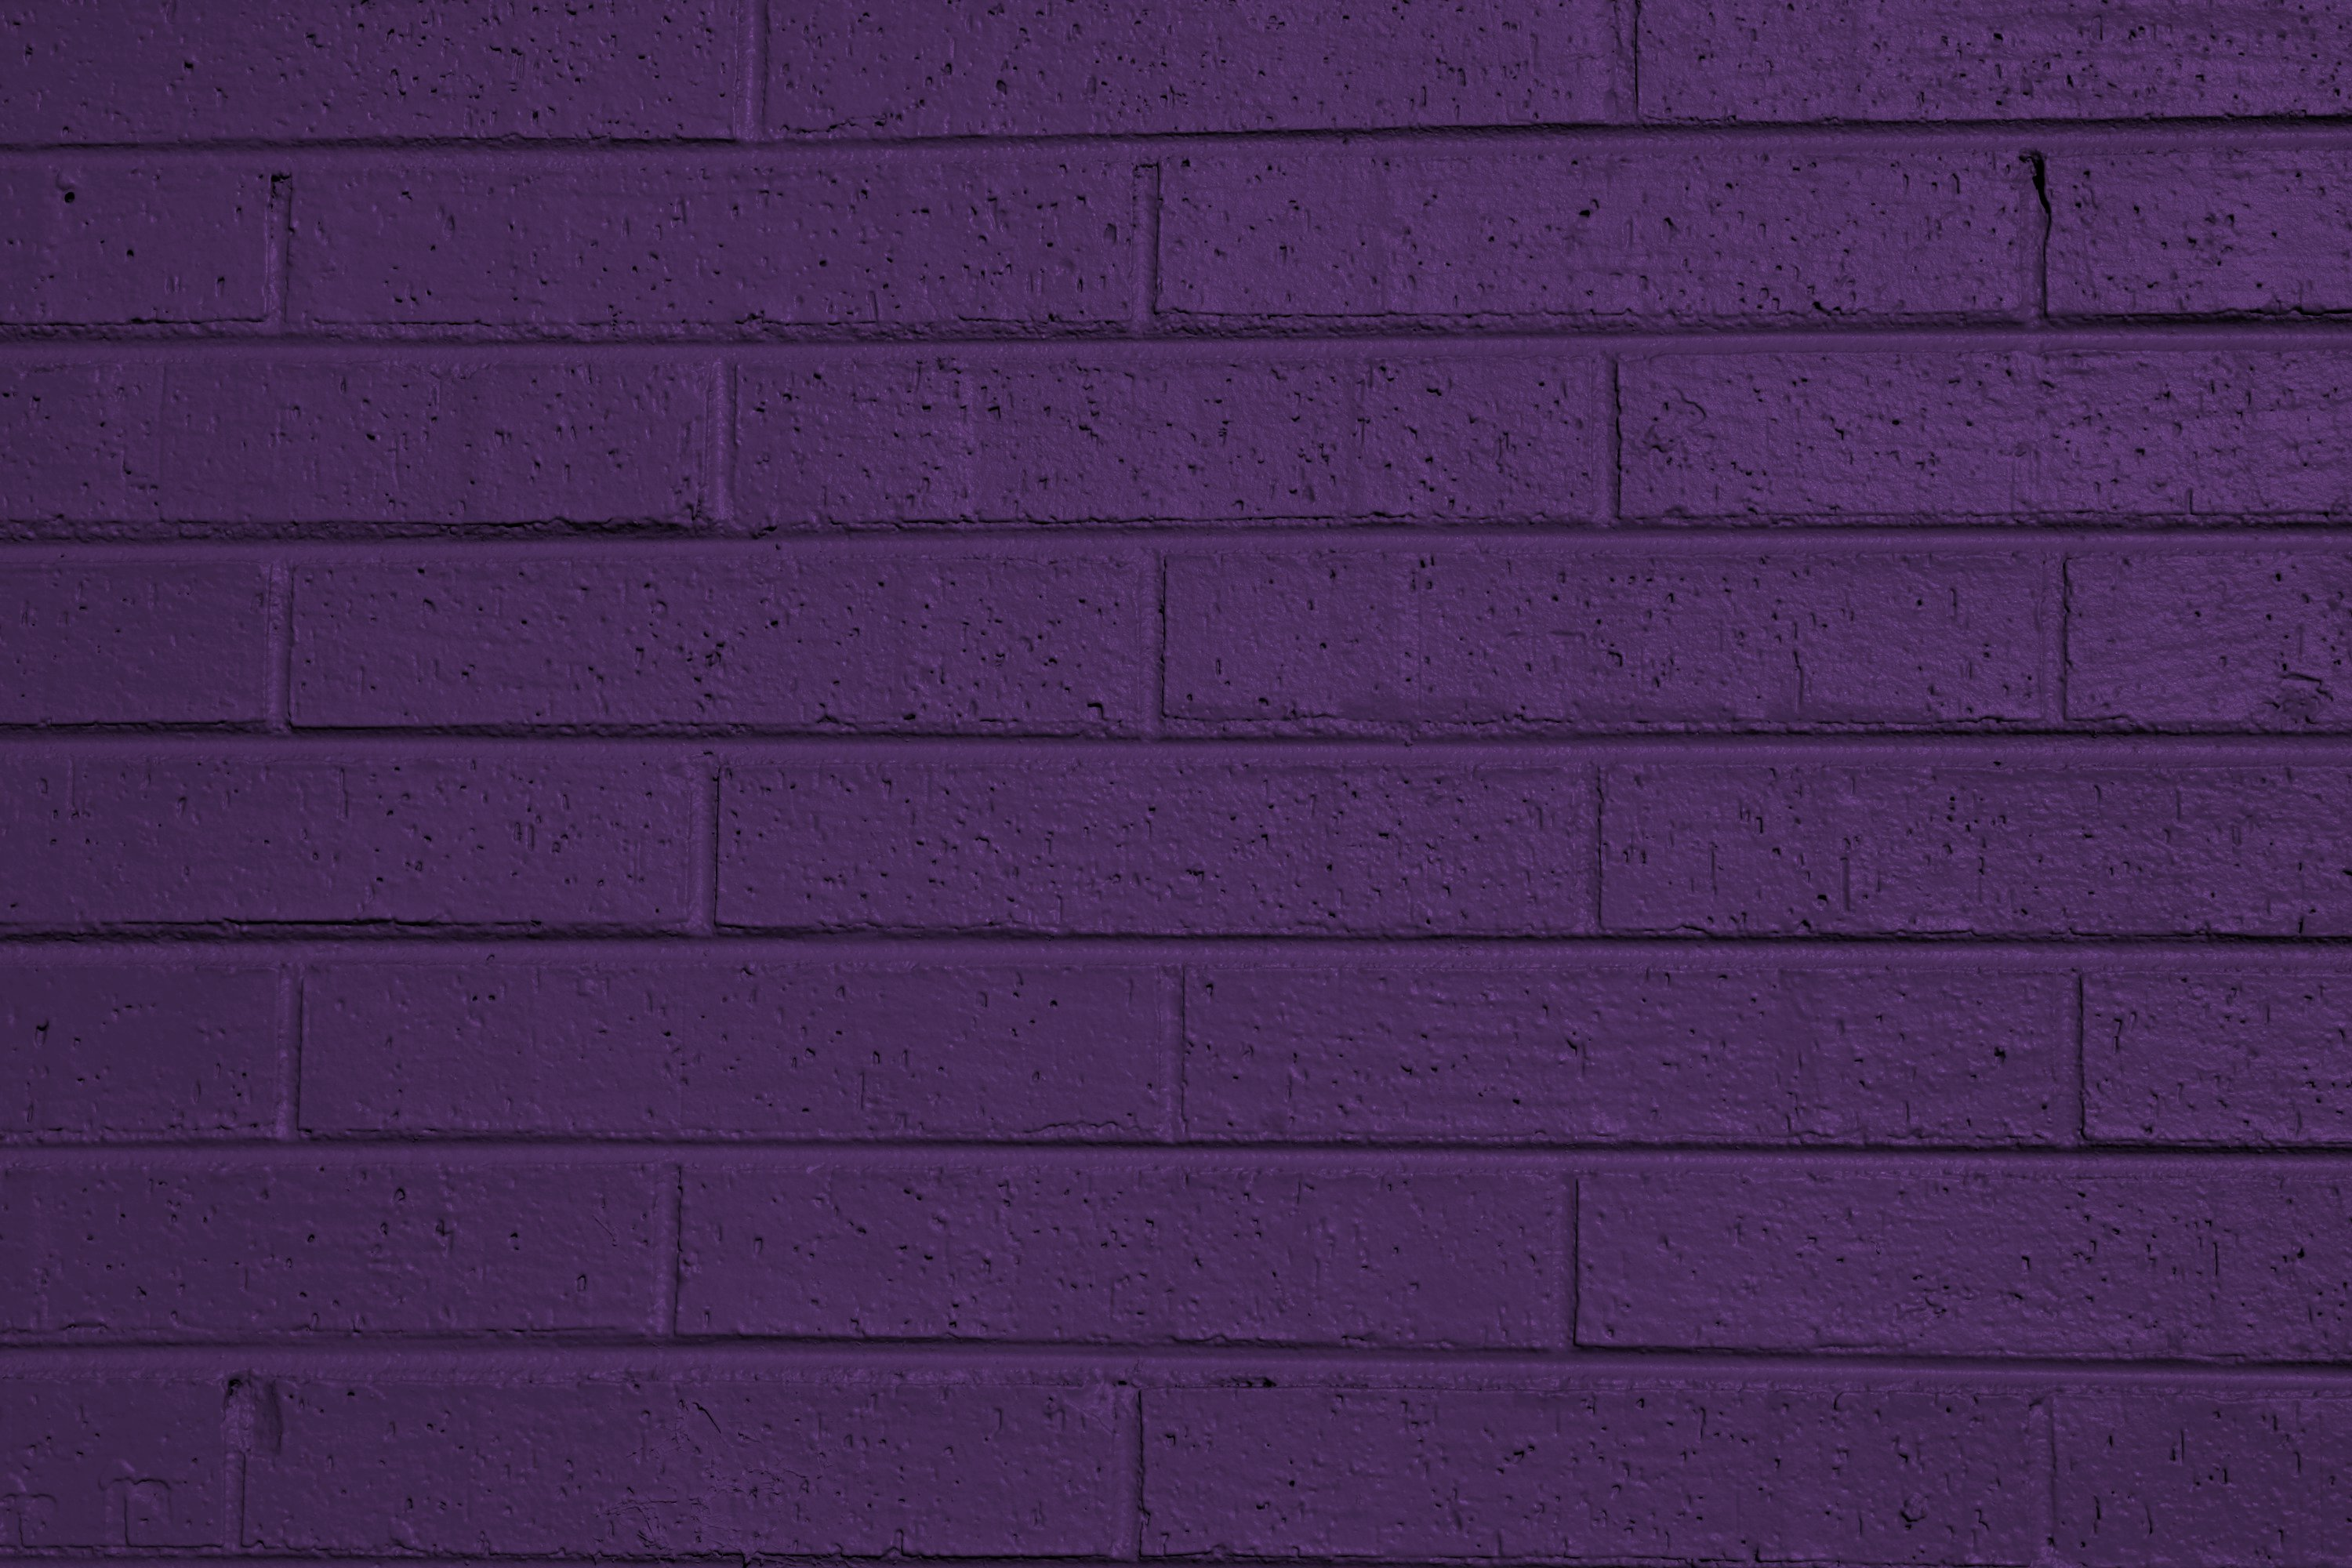 Dark purple painted brick ball texture free high resolution photo